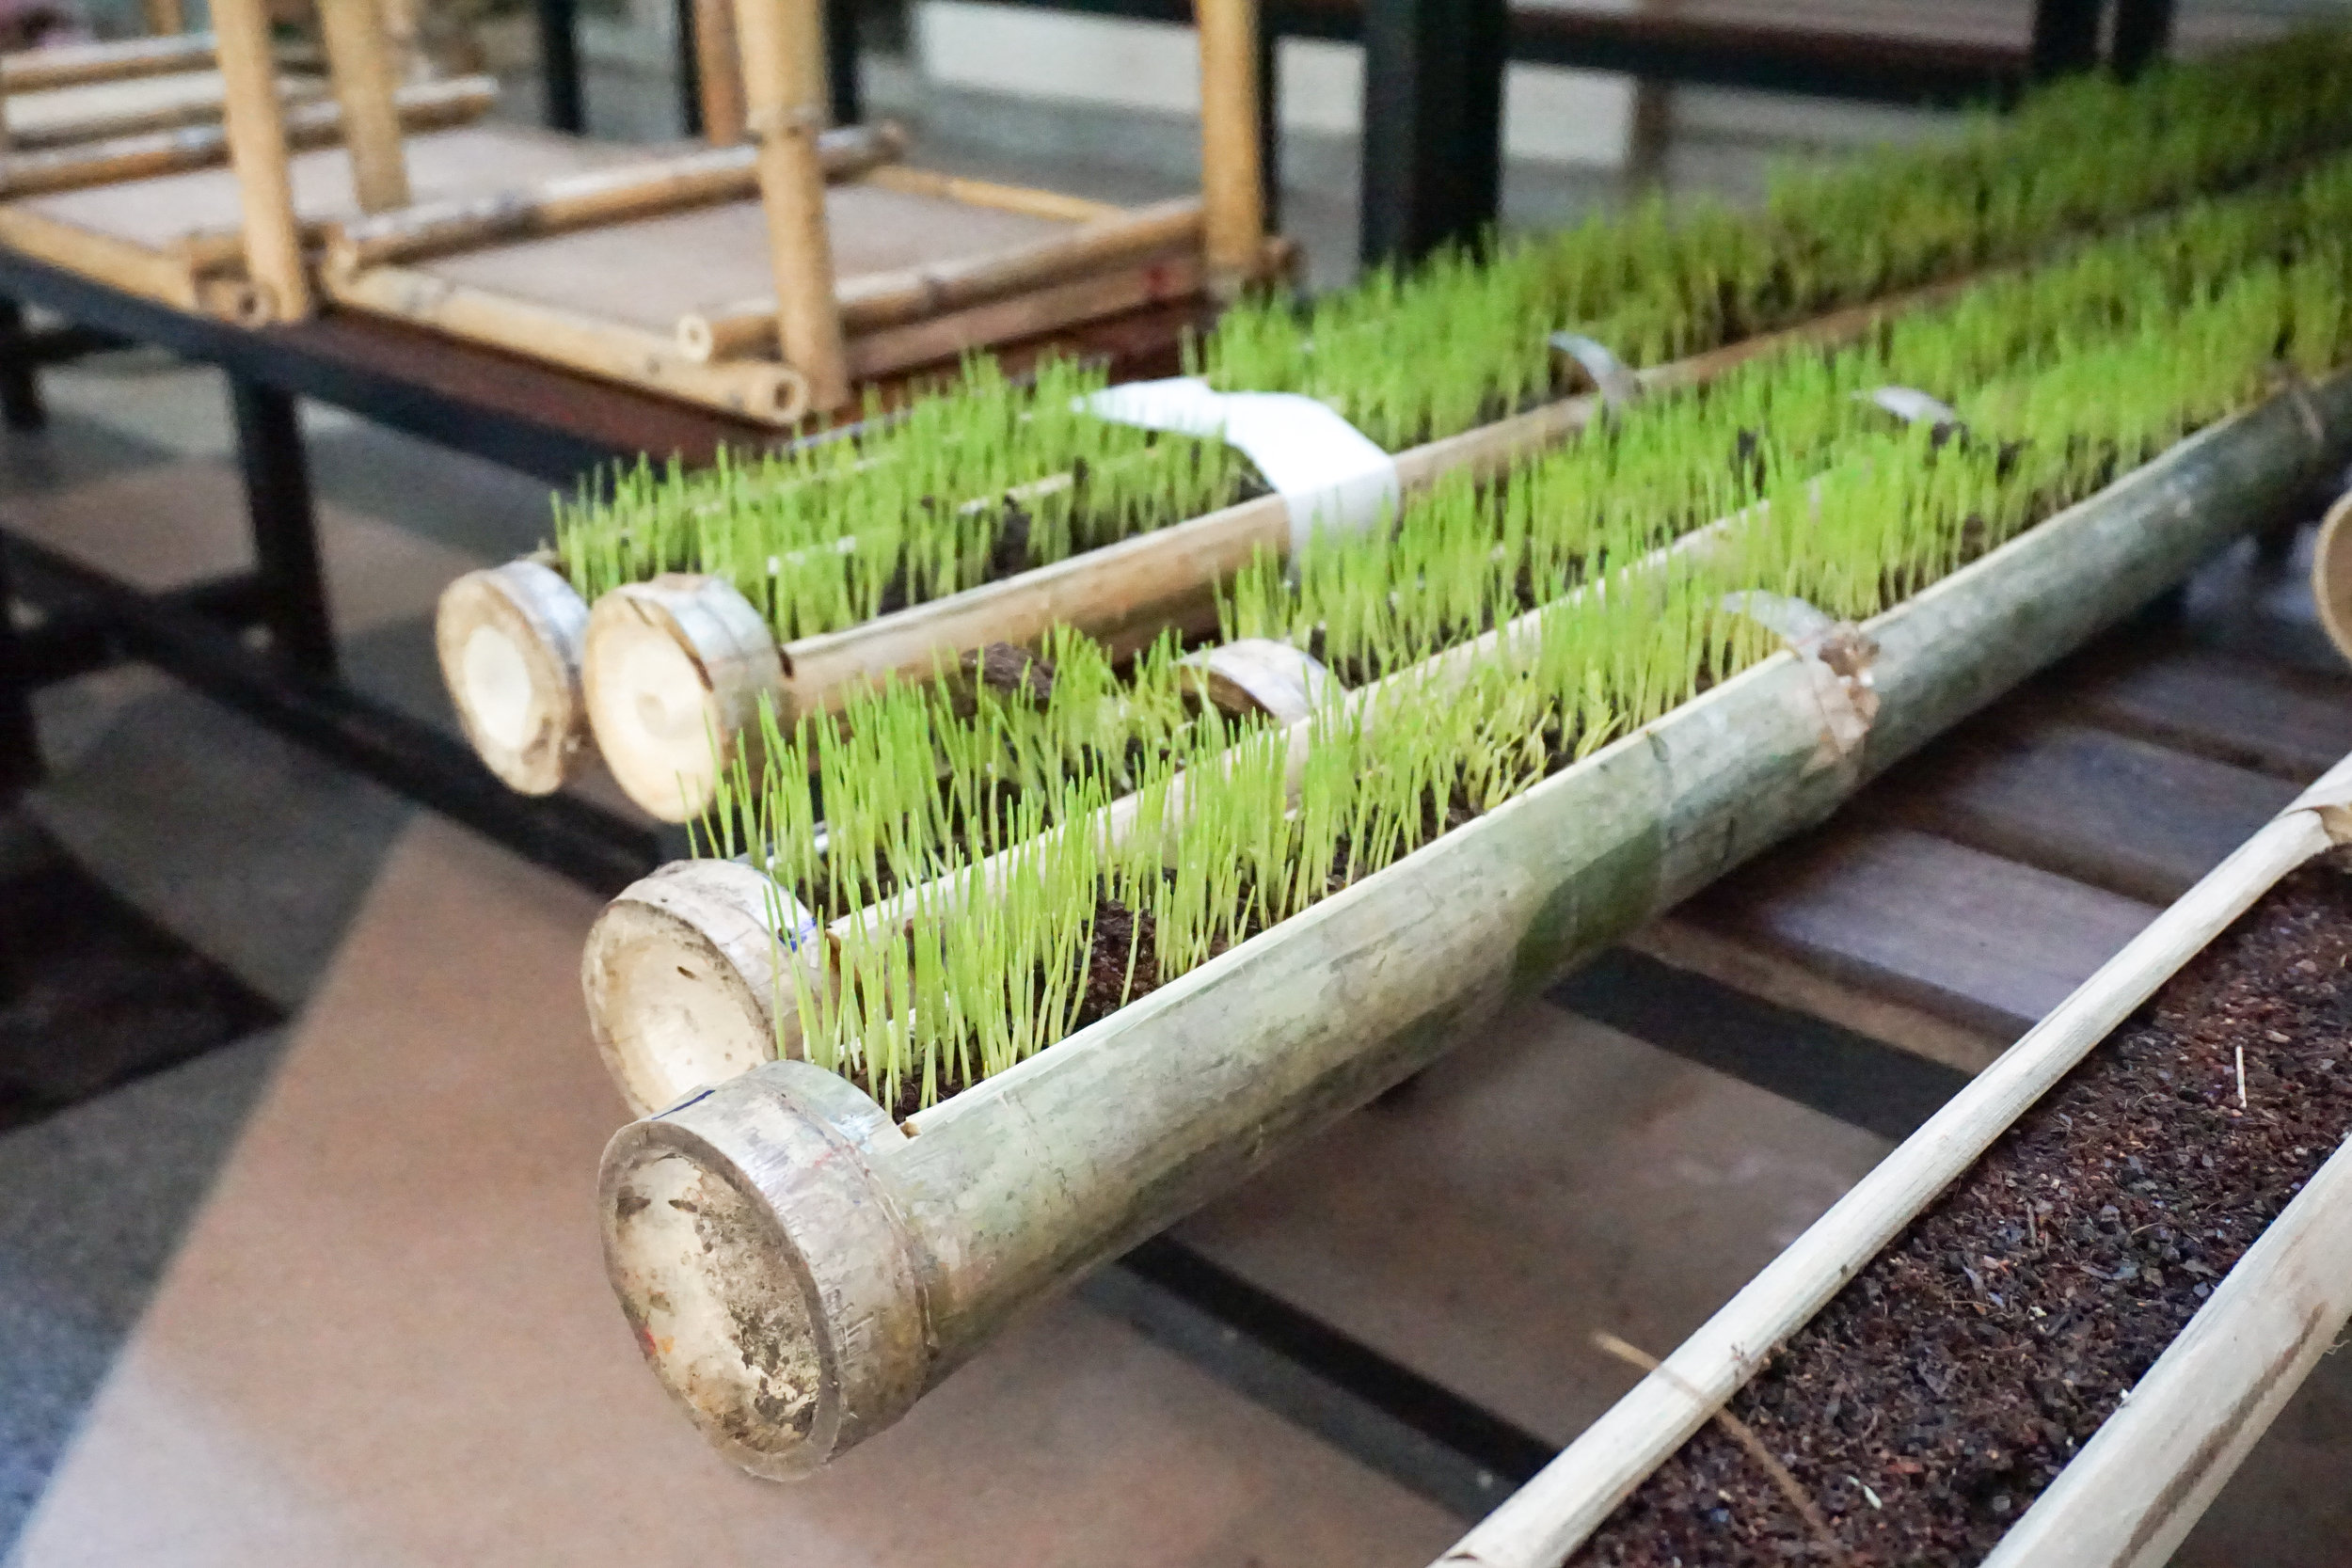 City Farming for a Sustainable City Event: Growing micro greens in bamboo